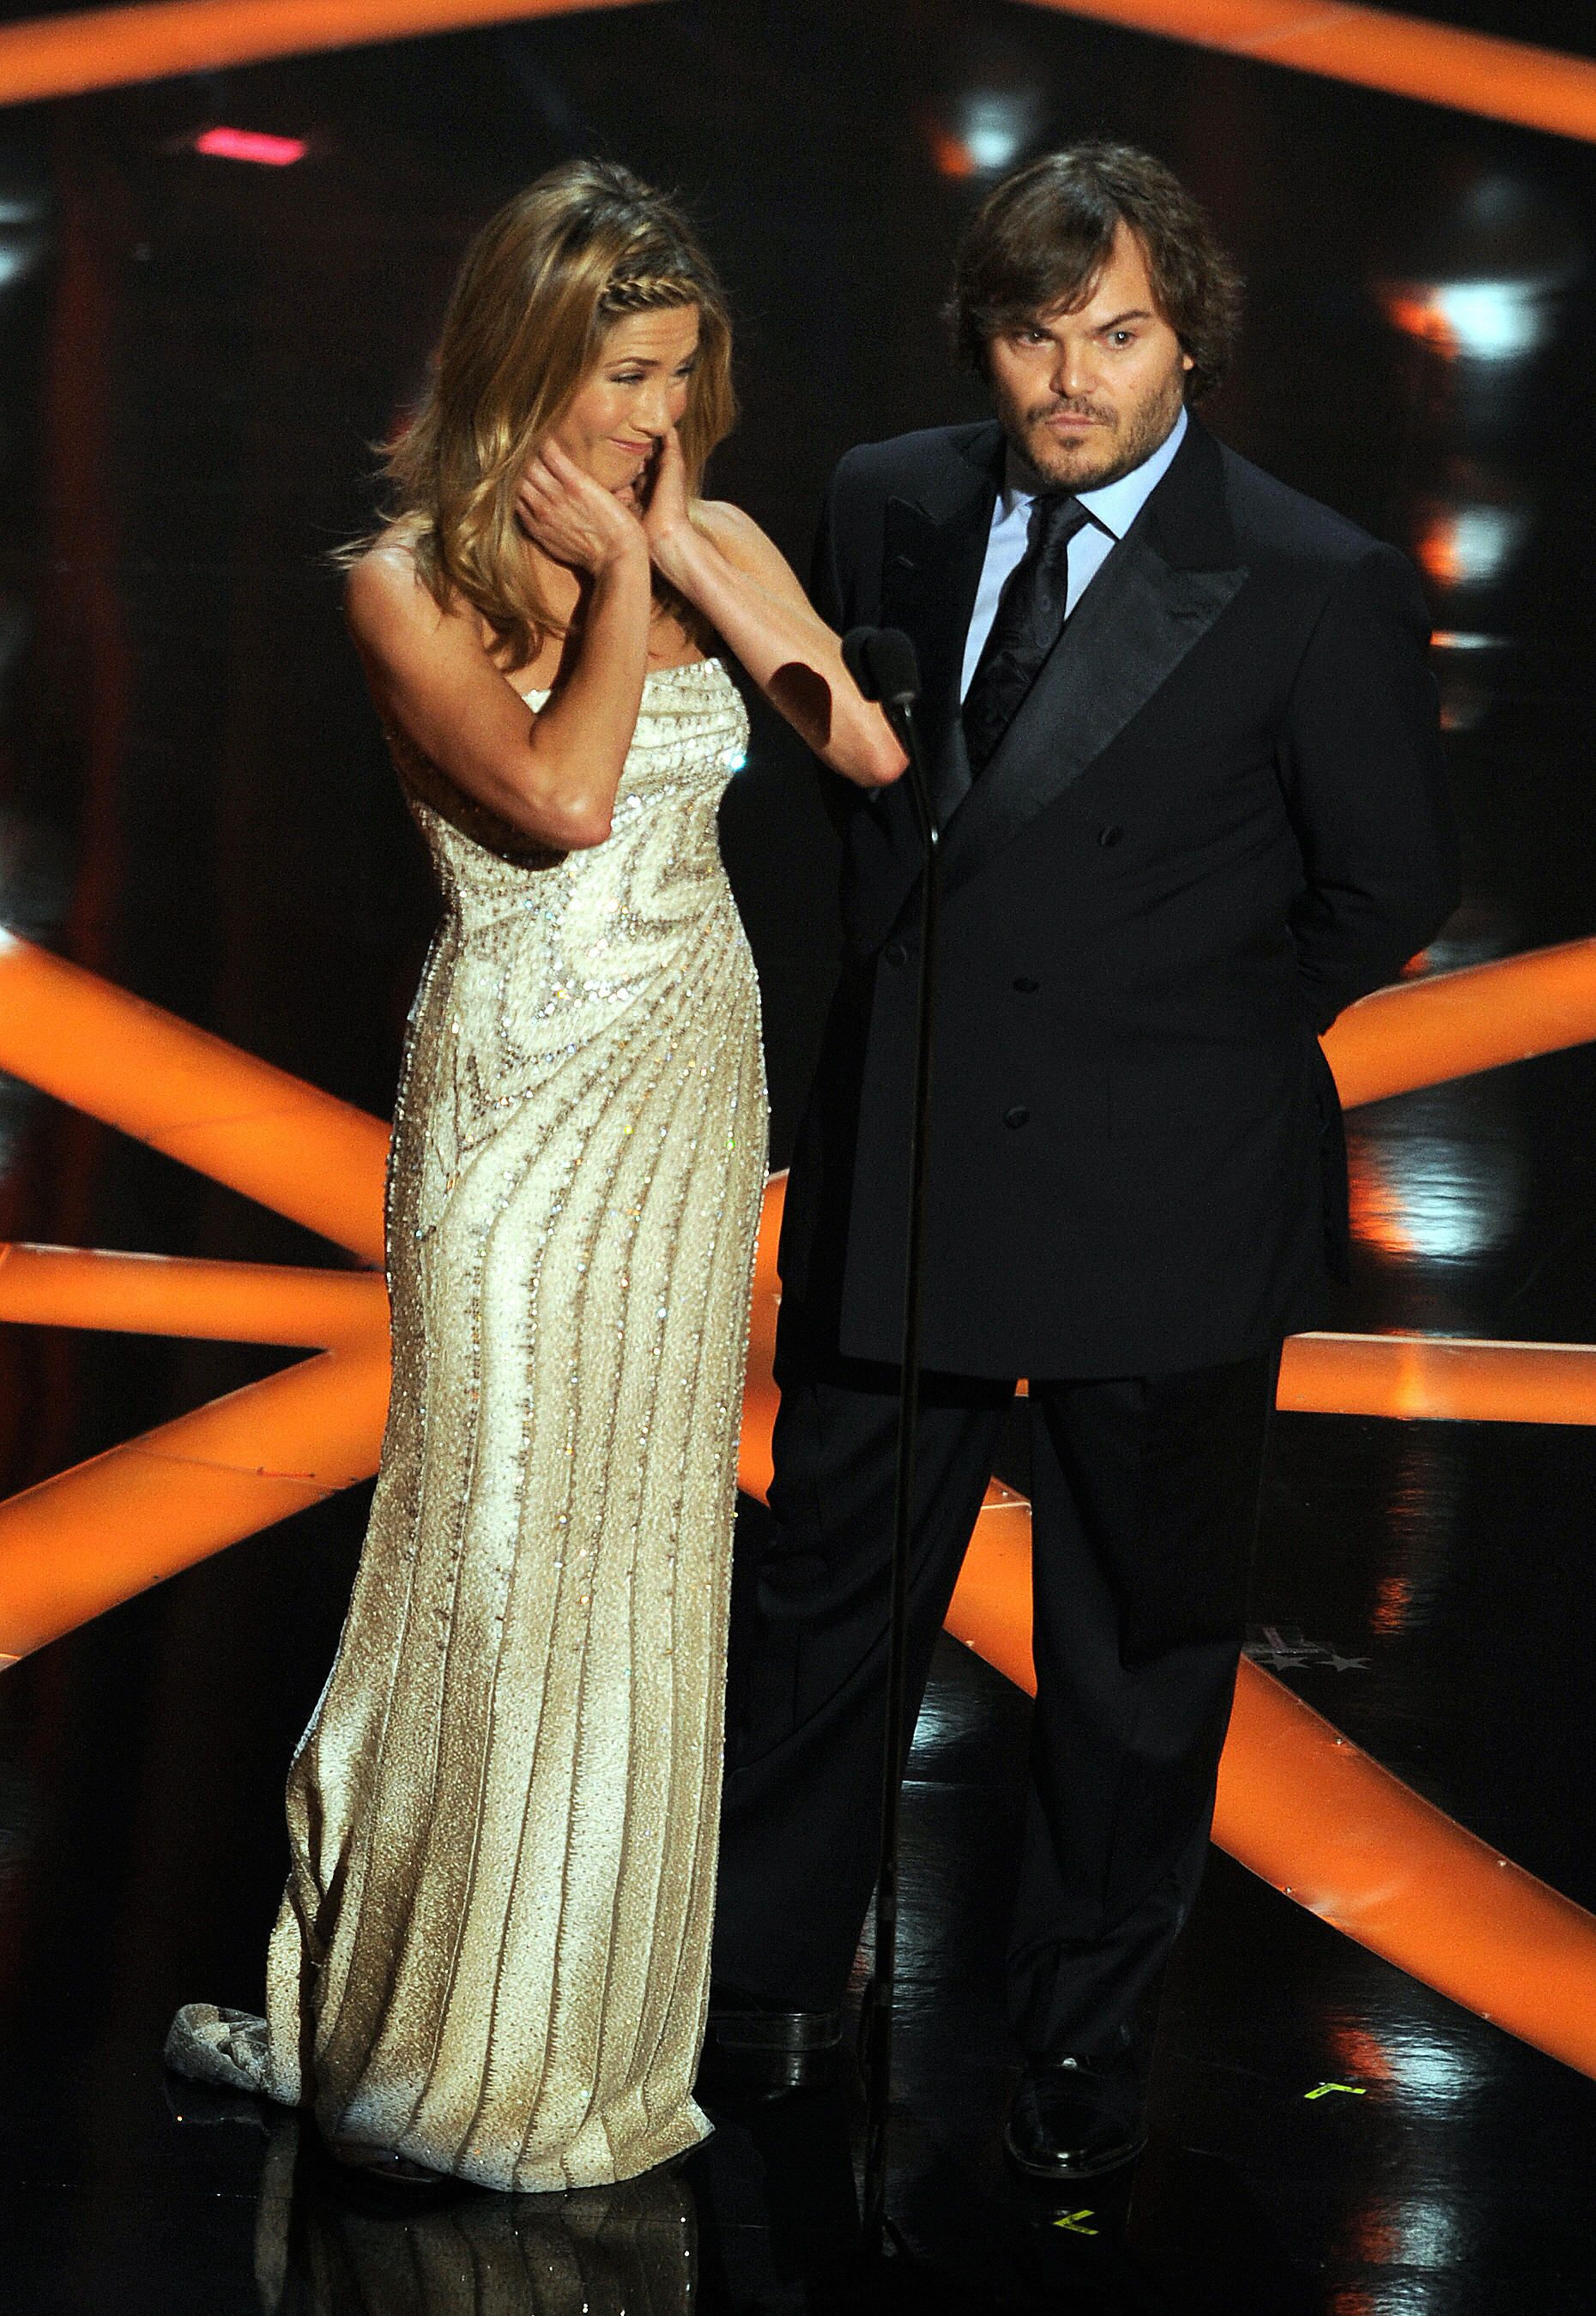 2009: When Jennifer Aniston had to present an award right in front of Brad Pitt and Angelina Jolie. Five years after their divorce, Aniston was forced to present an Oscar right in front of Pitt and his girlfriend at the time, Angelina Jolie—and she was noticeably uncomfortable (as were we) about the whole thing.